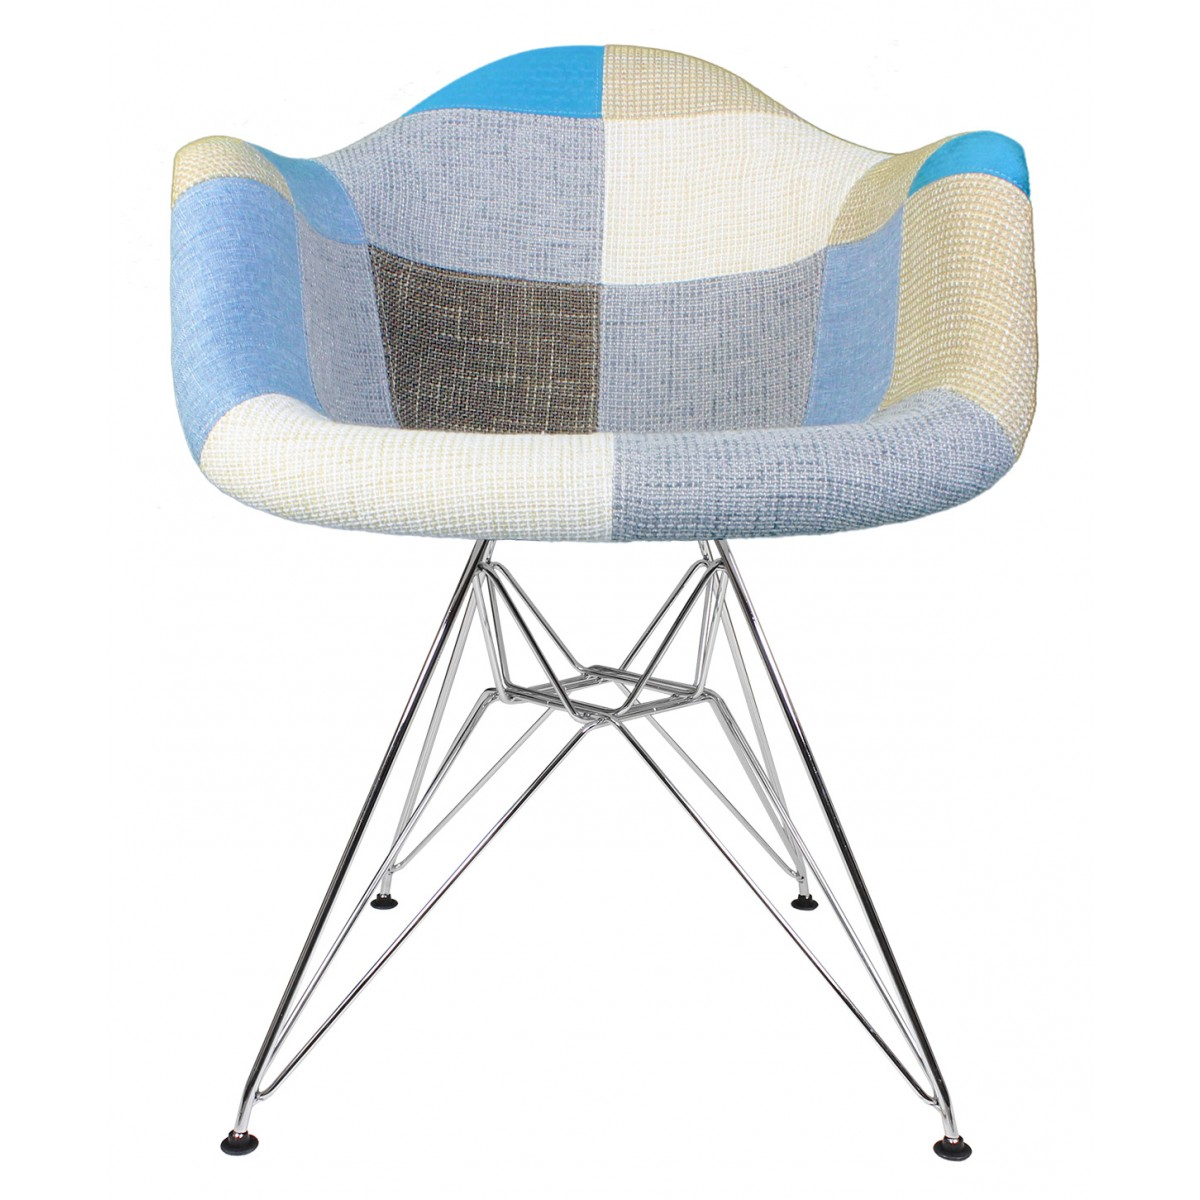 Enjoyable Patchwork Fabric Upholstered Mid Century Eames Style Accent Arm Chair With Steel Eiffel Legs Cjindustries Chair Design For Home Cjindustriesco